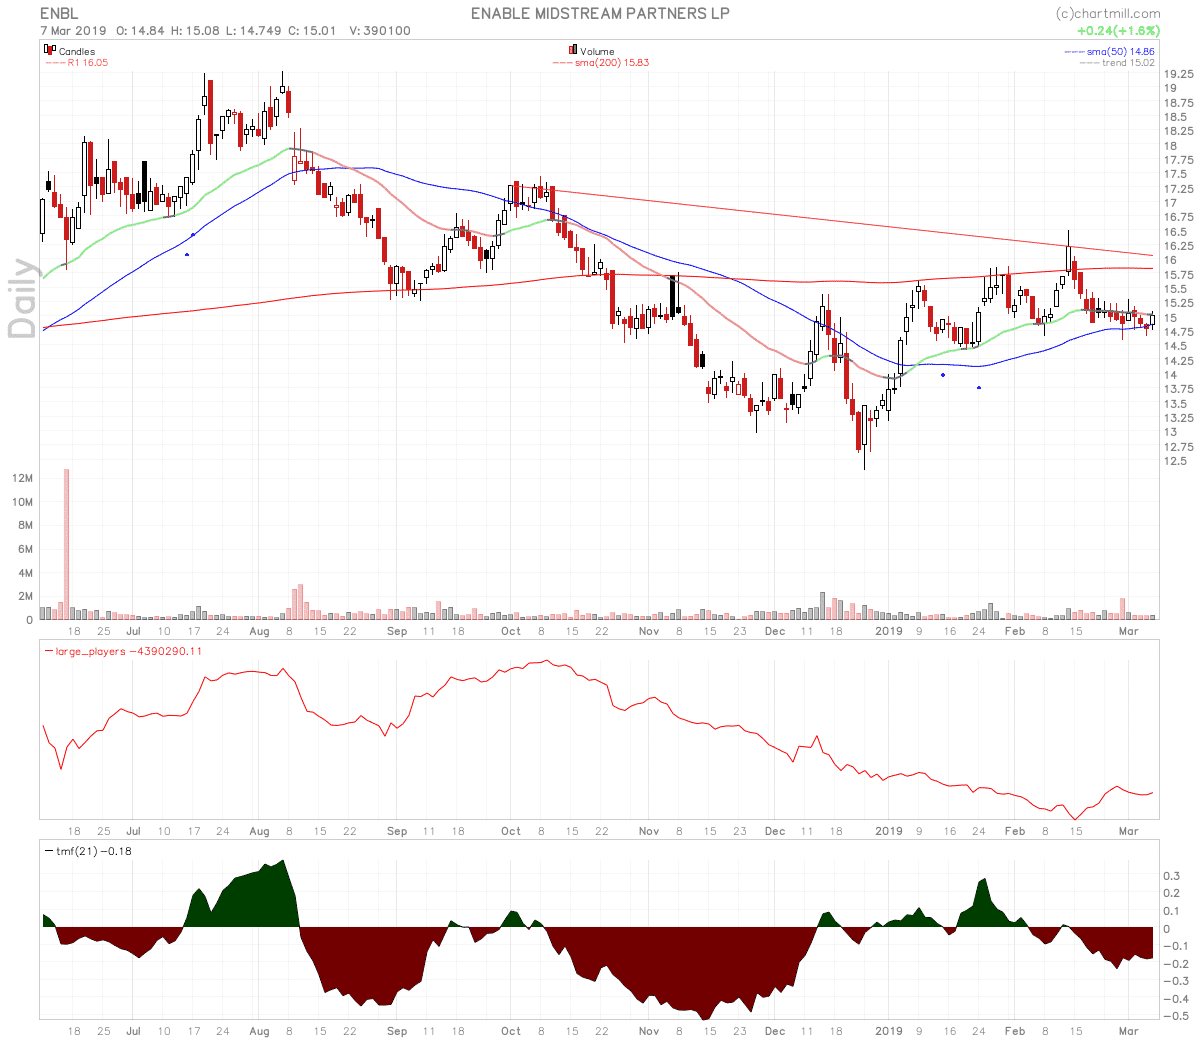 Sell $ENBL For a -2 Percent Loss